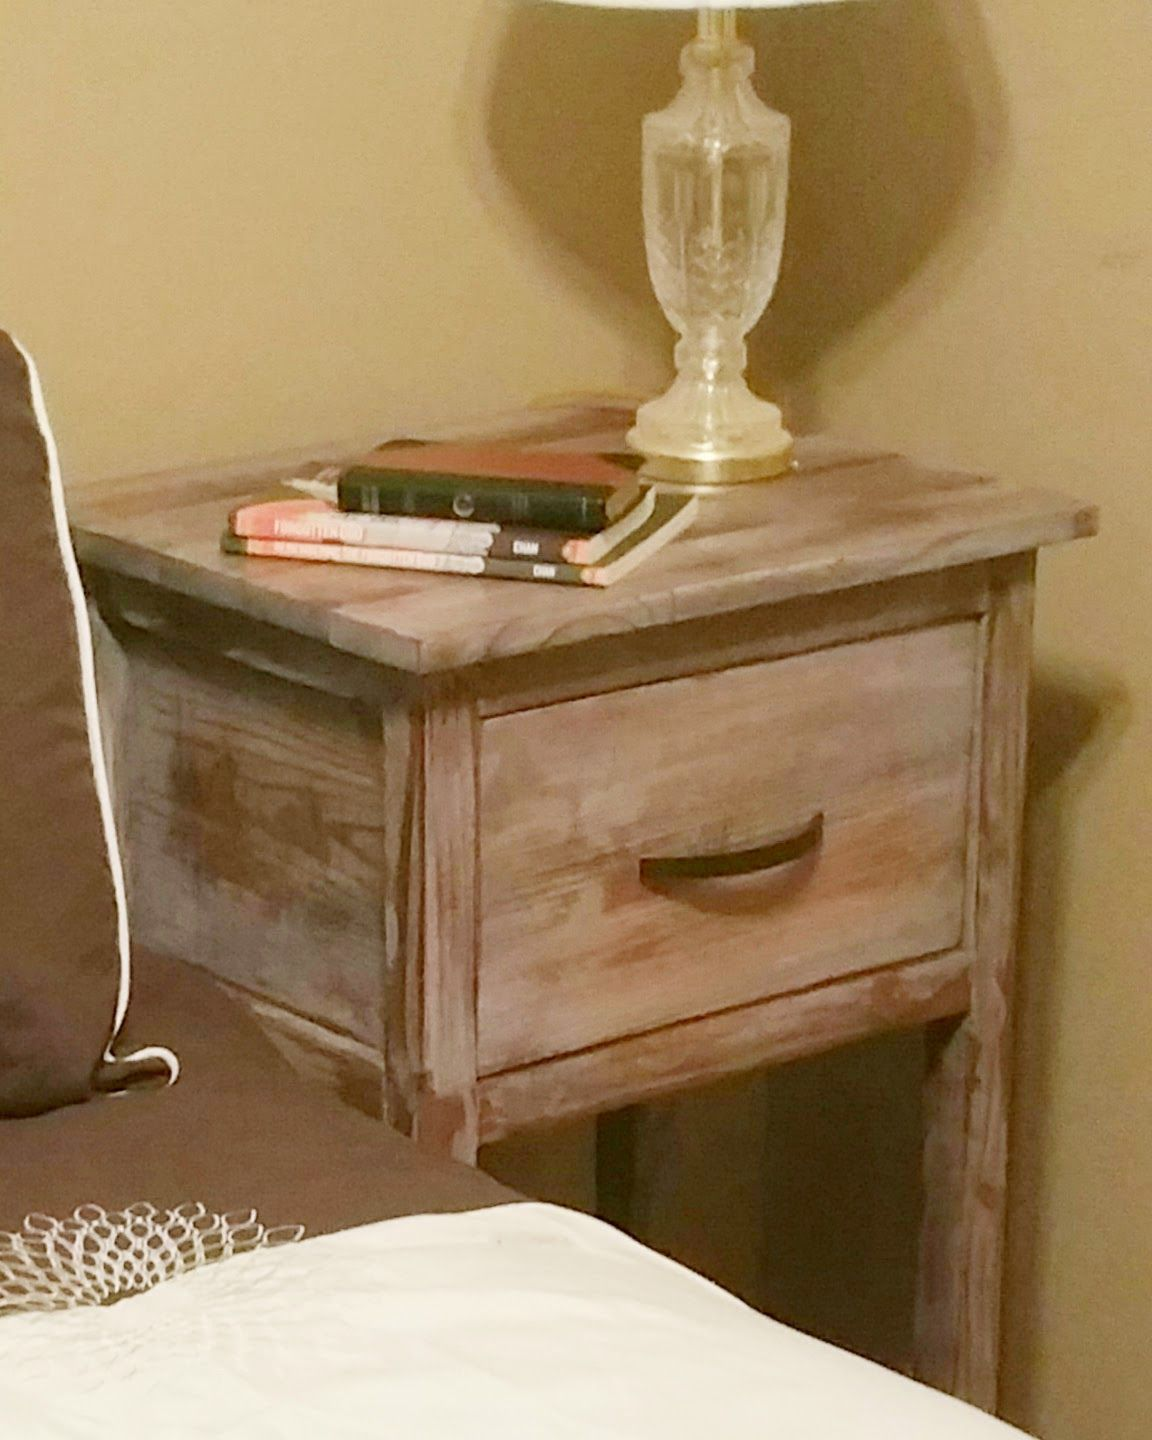 Night stands custom sized and finished do it yourself home night stands custom sized and finished do it yourself home projects from ana white solutioingenieria Image collections